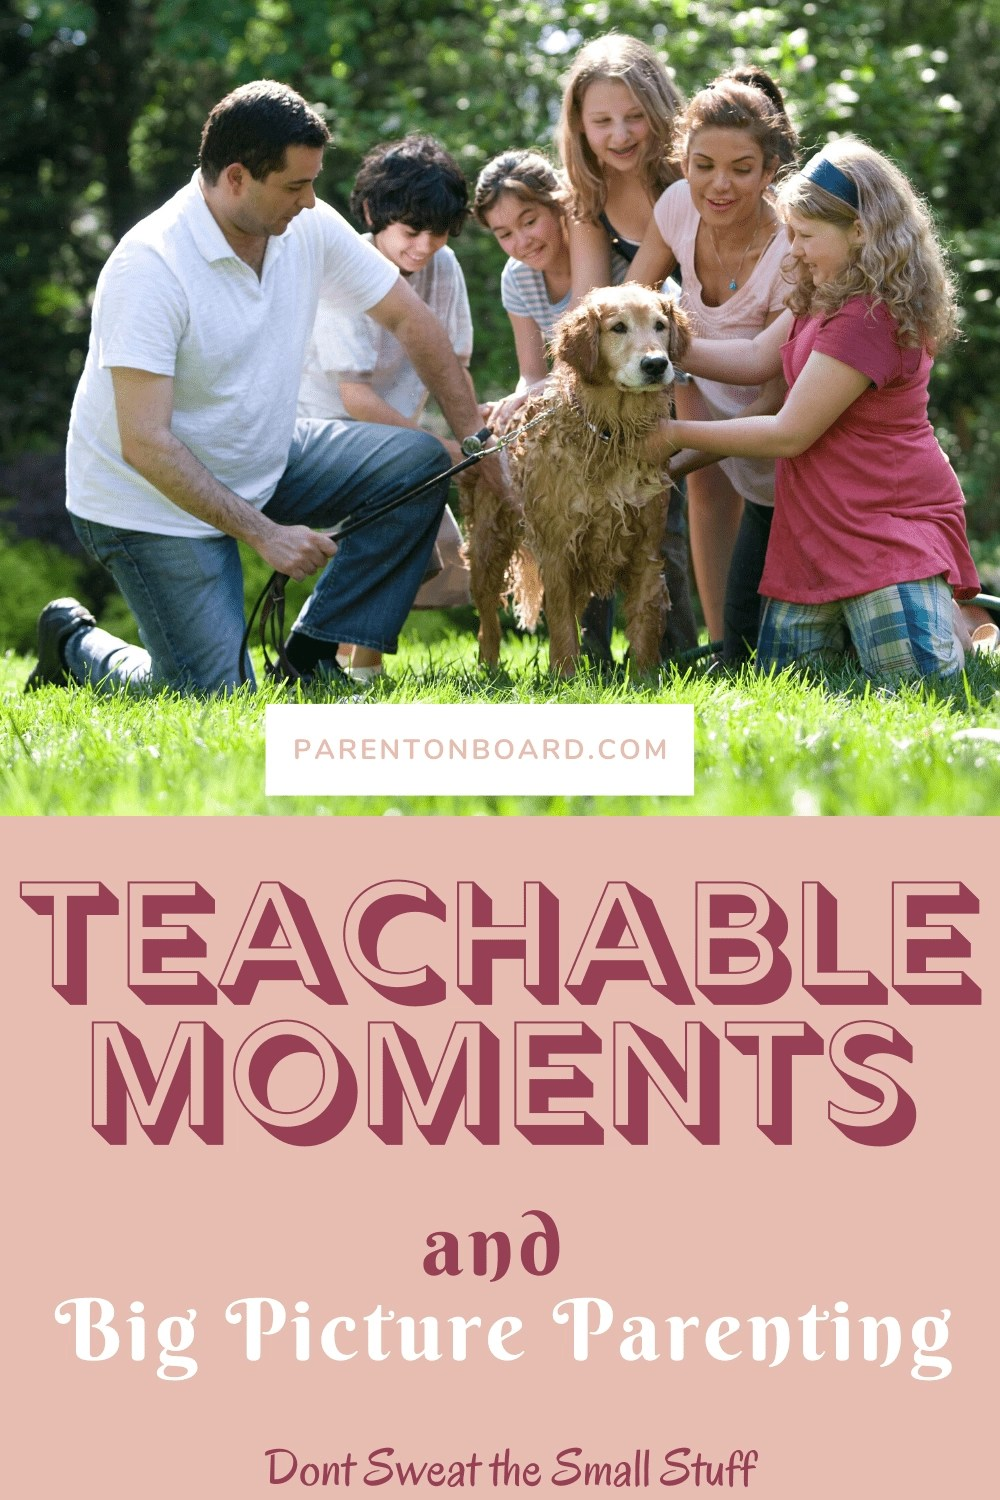 Teachable Moments and Big Picture Parenting